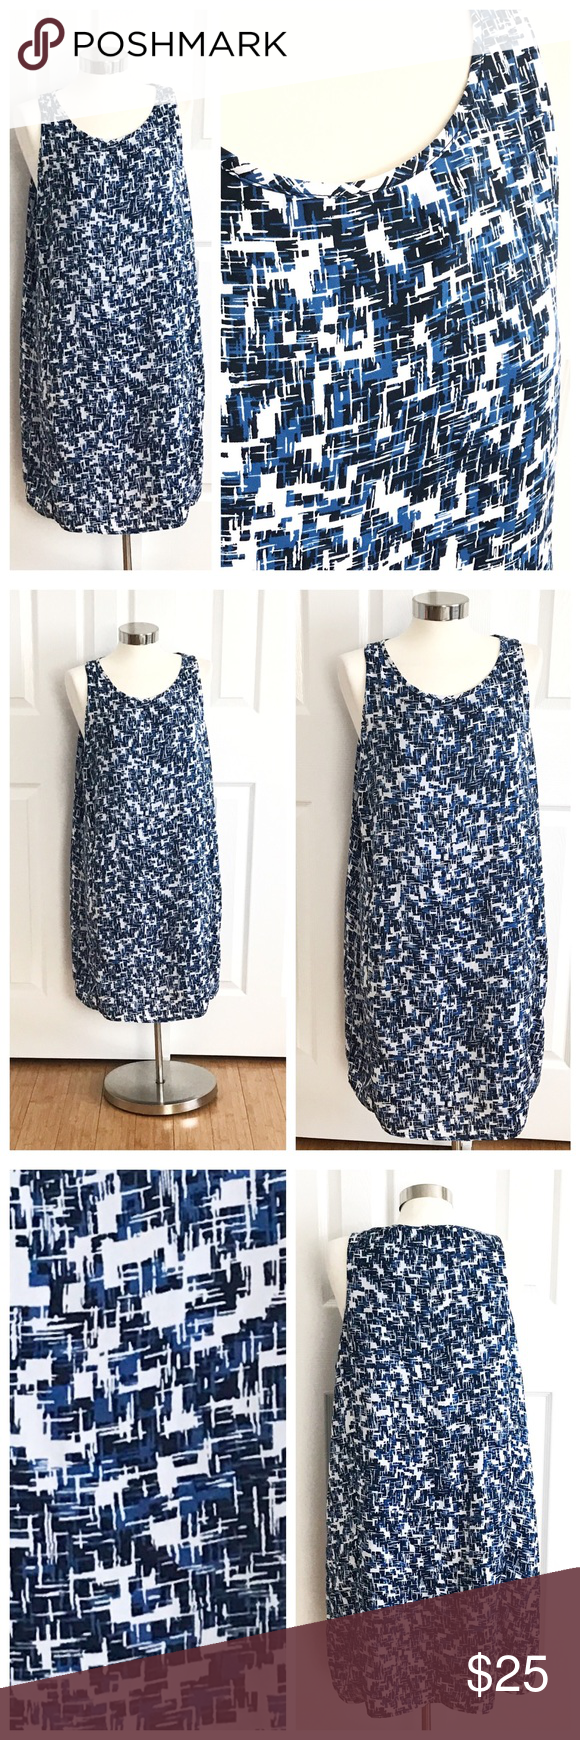 Dalia Blue Sleeveless Dress Plus Size Blue white navy blue pattern dress with scoop neck, hidden zipper up back with hook and eye. Dalia brand size 14. Fully lined. 100% polyester. Dalia Dresses